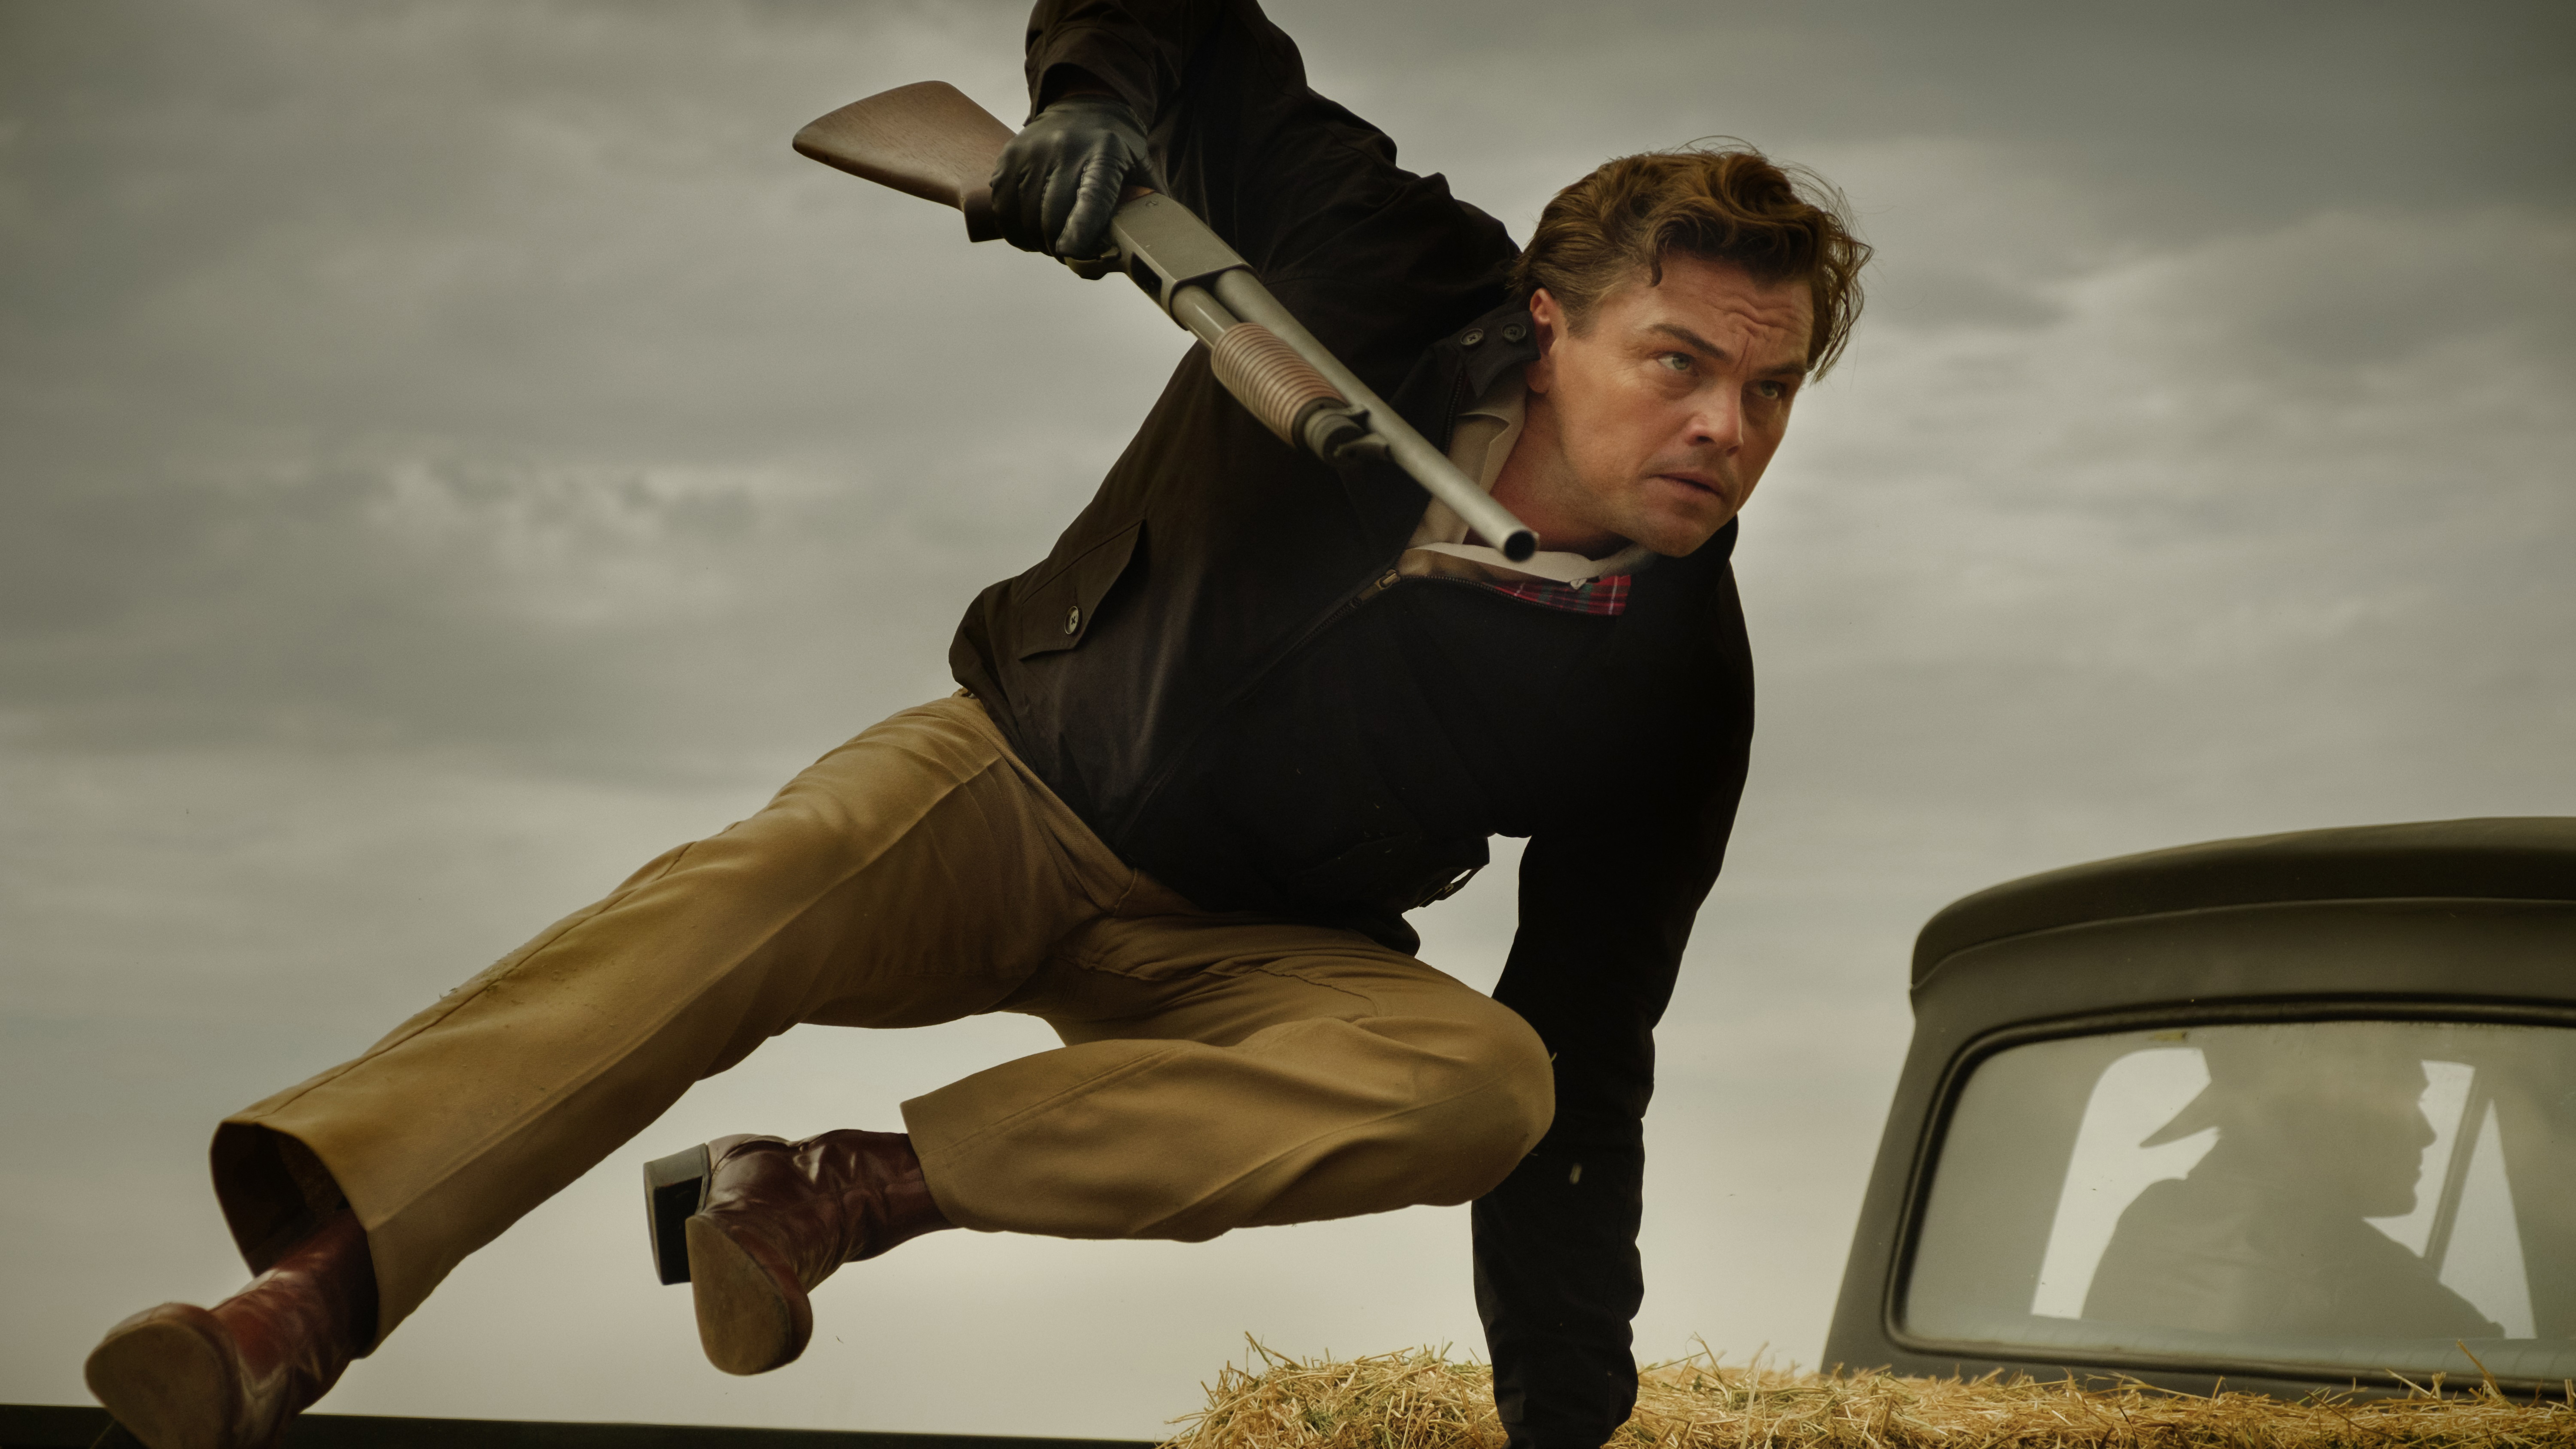 Leonardo Dicaprio Once Upon A Time In Hollywood 8k Wallpaper 1